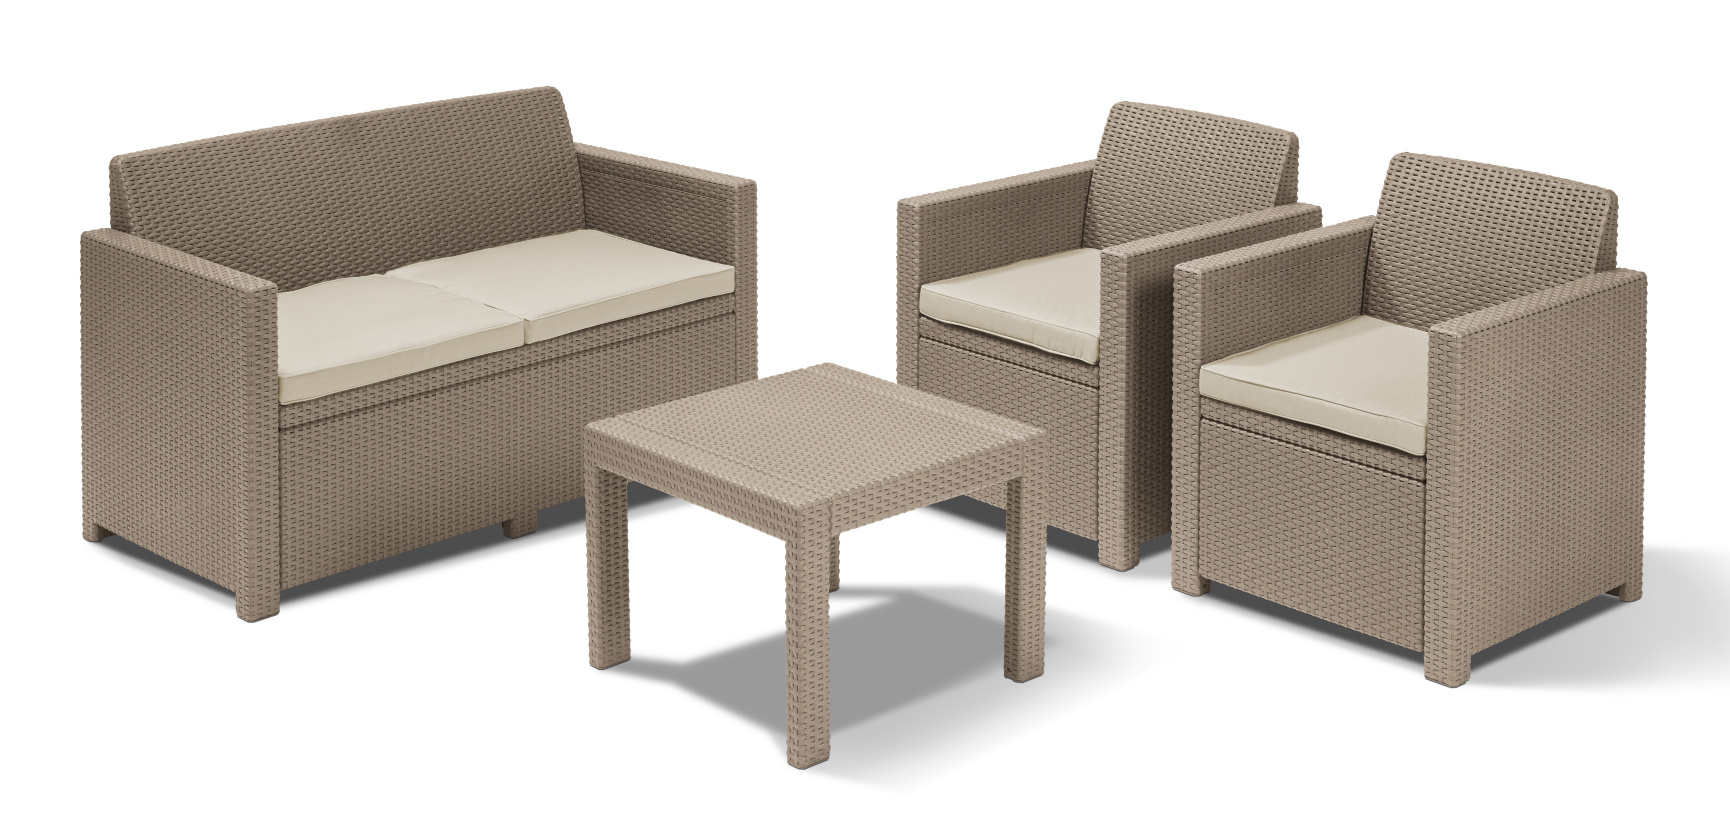 Best salon de jardin allibert alabama lounge set gallery - Salon de jardin allibert hawaii lounge set ...